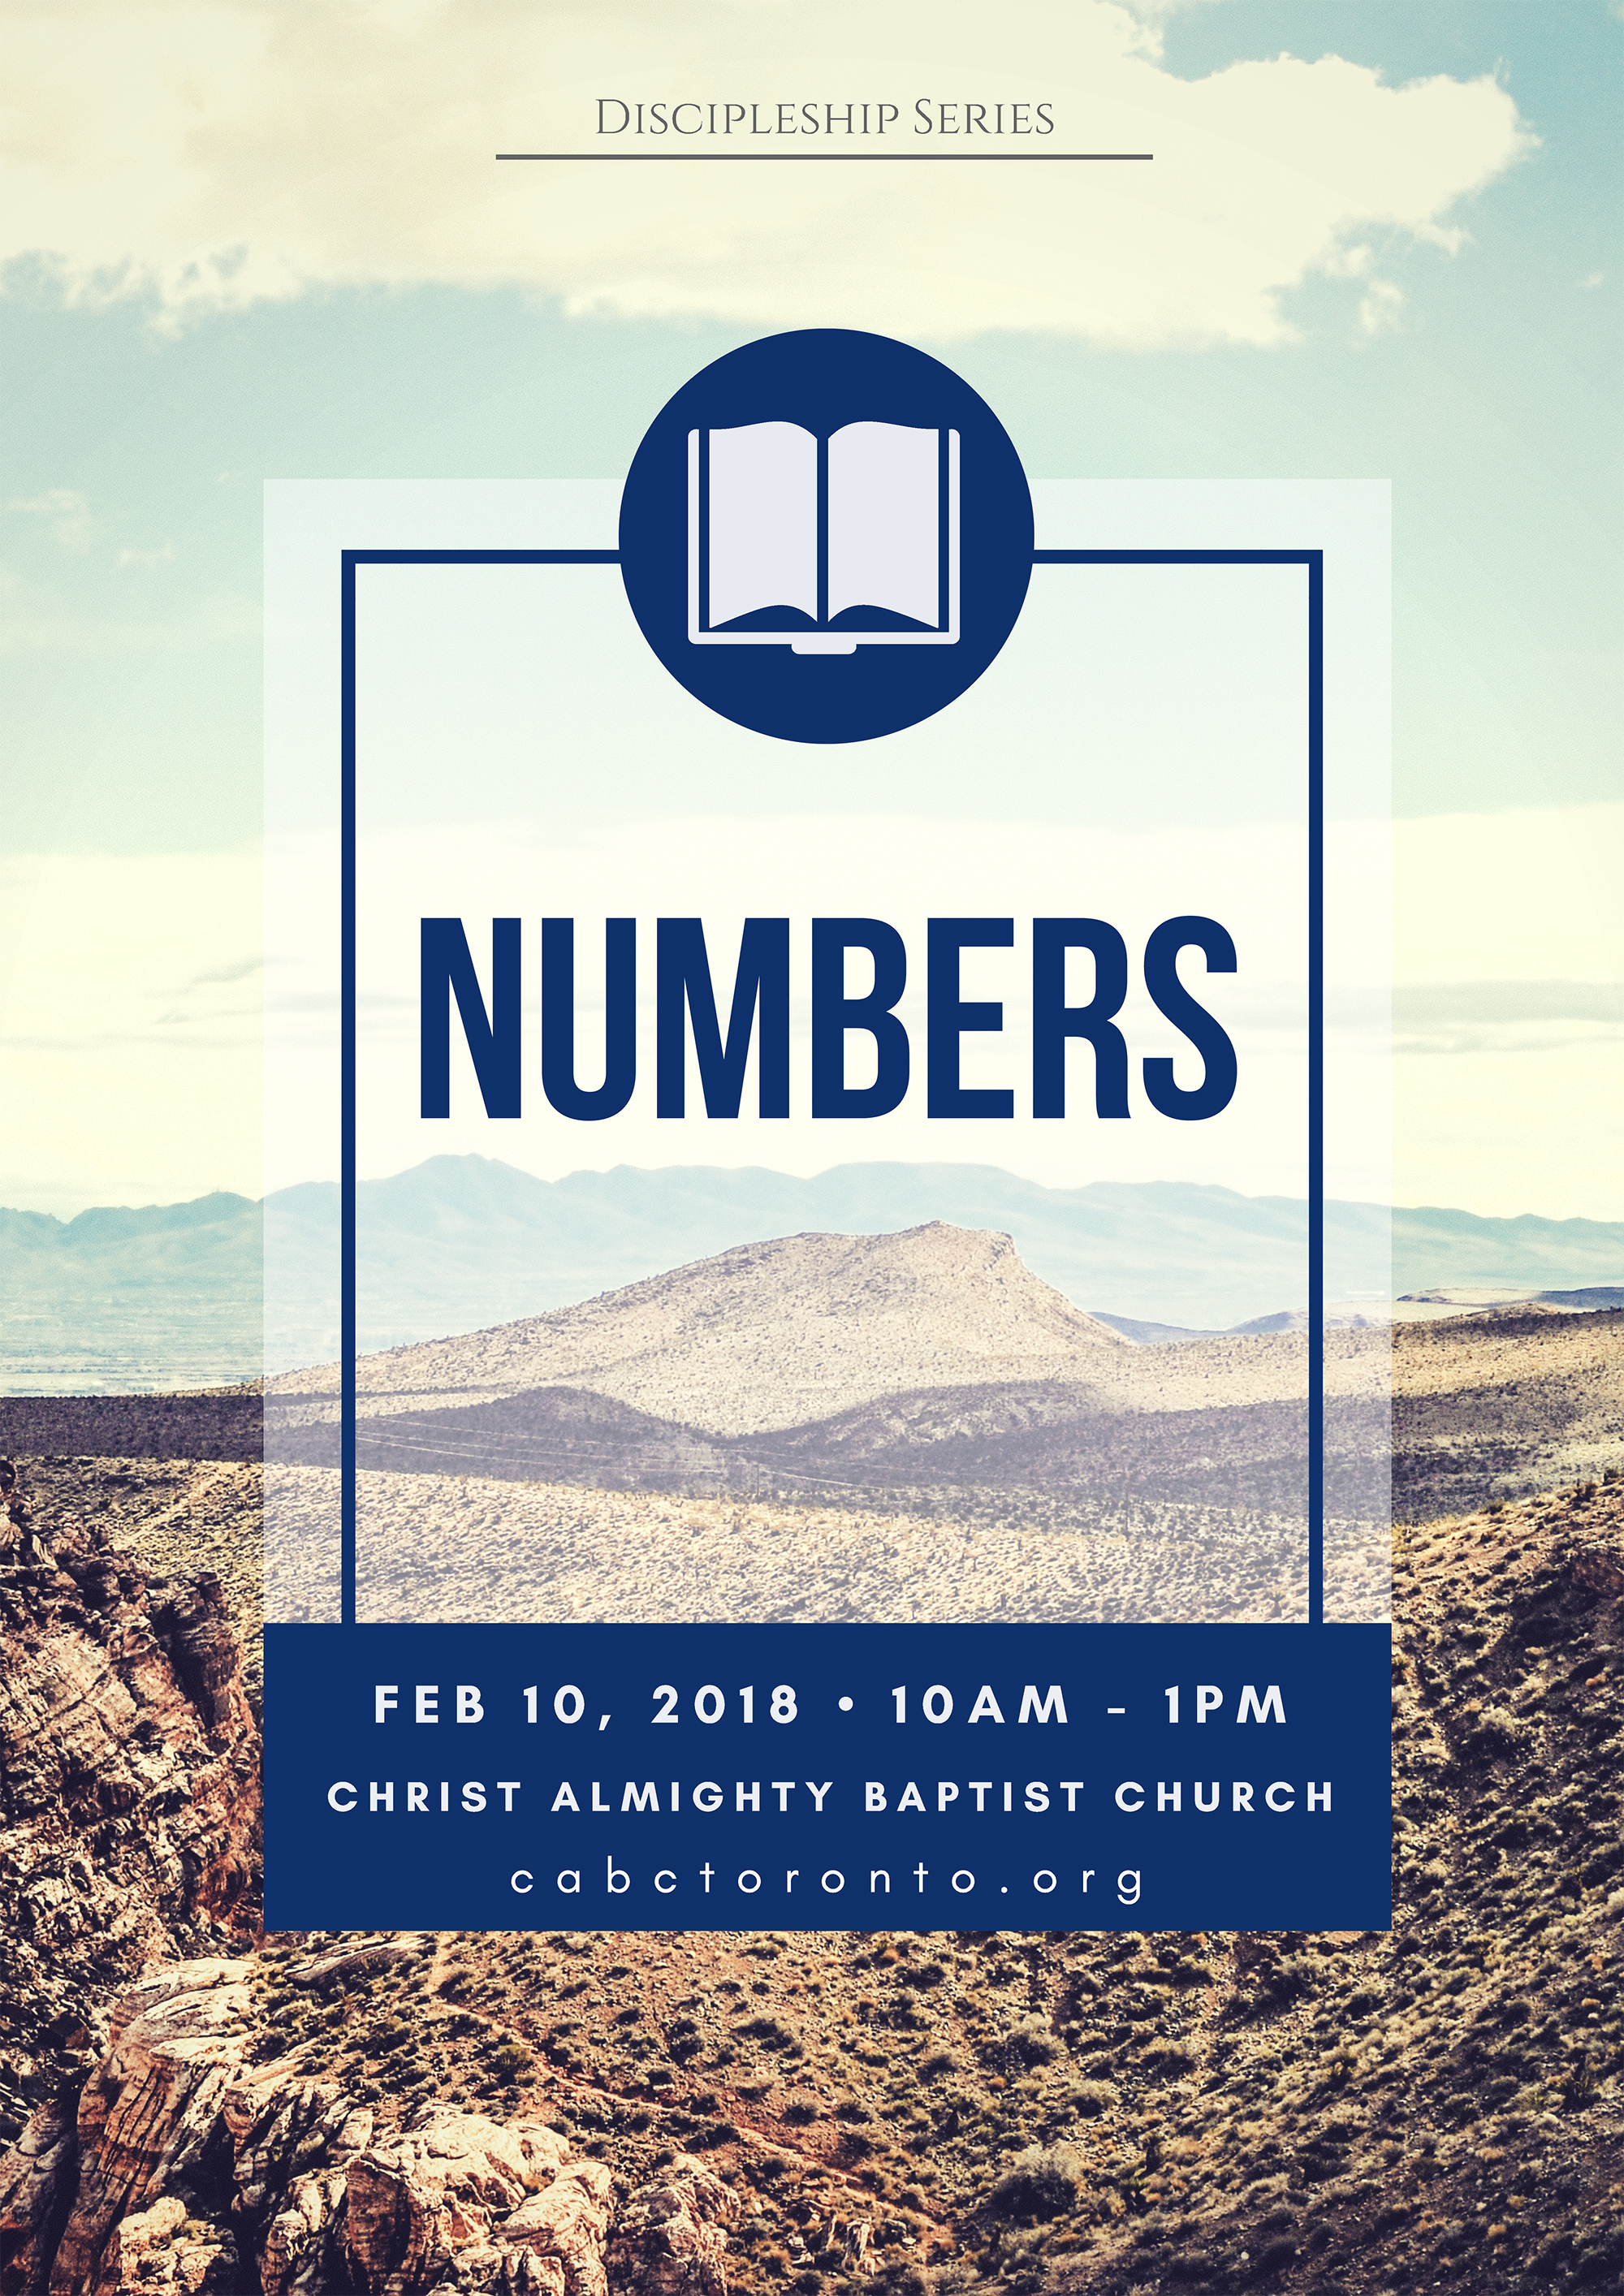 CABC-DiscipleshipSeries2018-Numbers.jpg